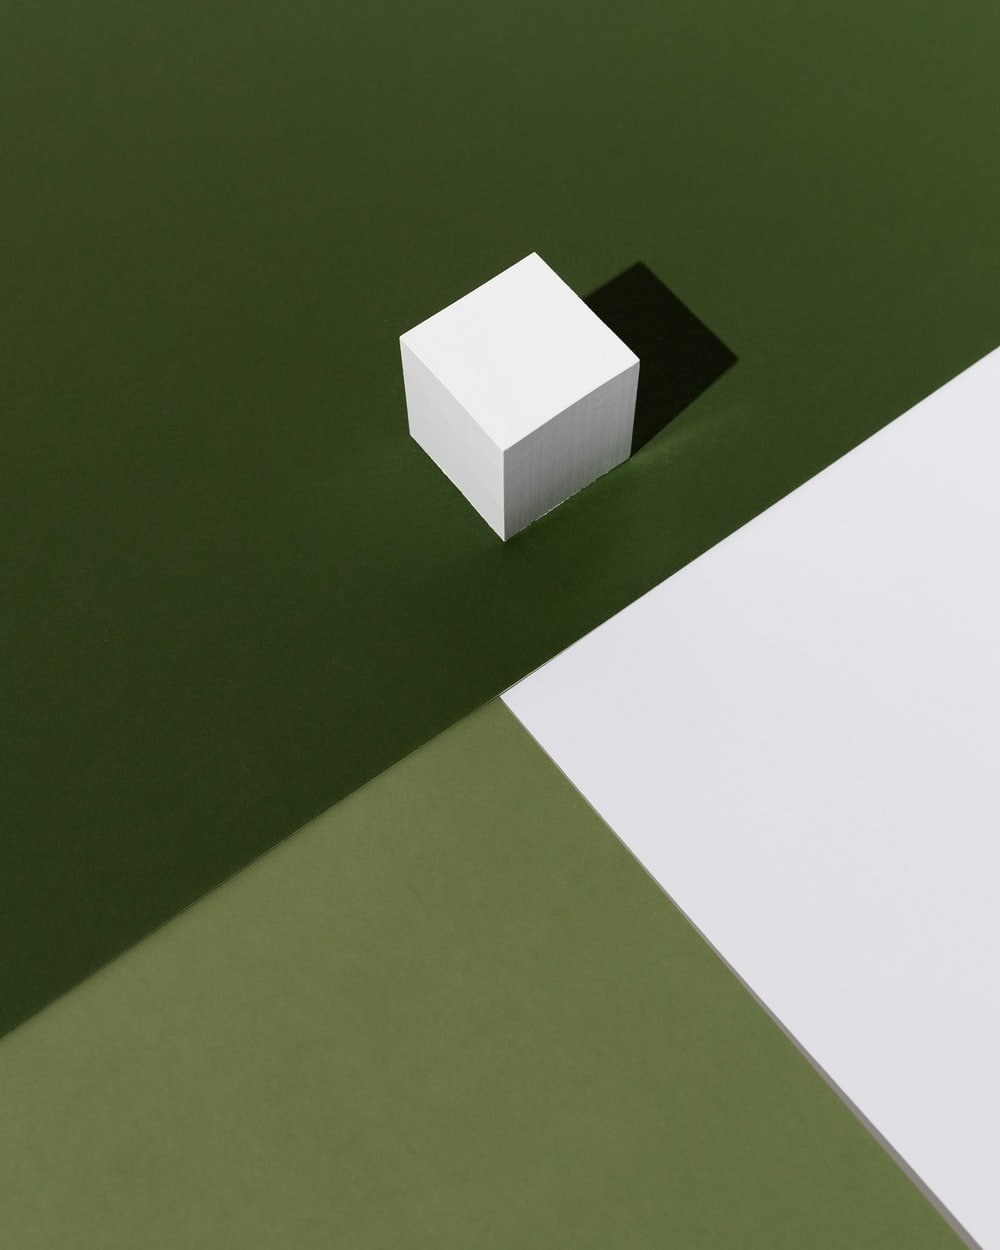 white box on green table